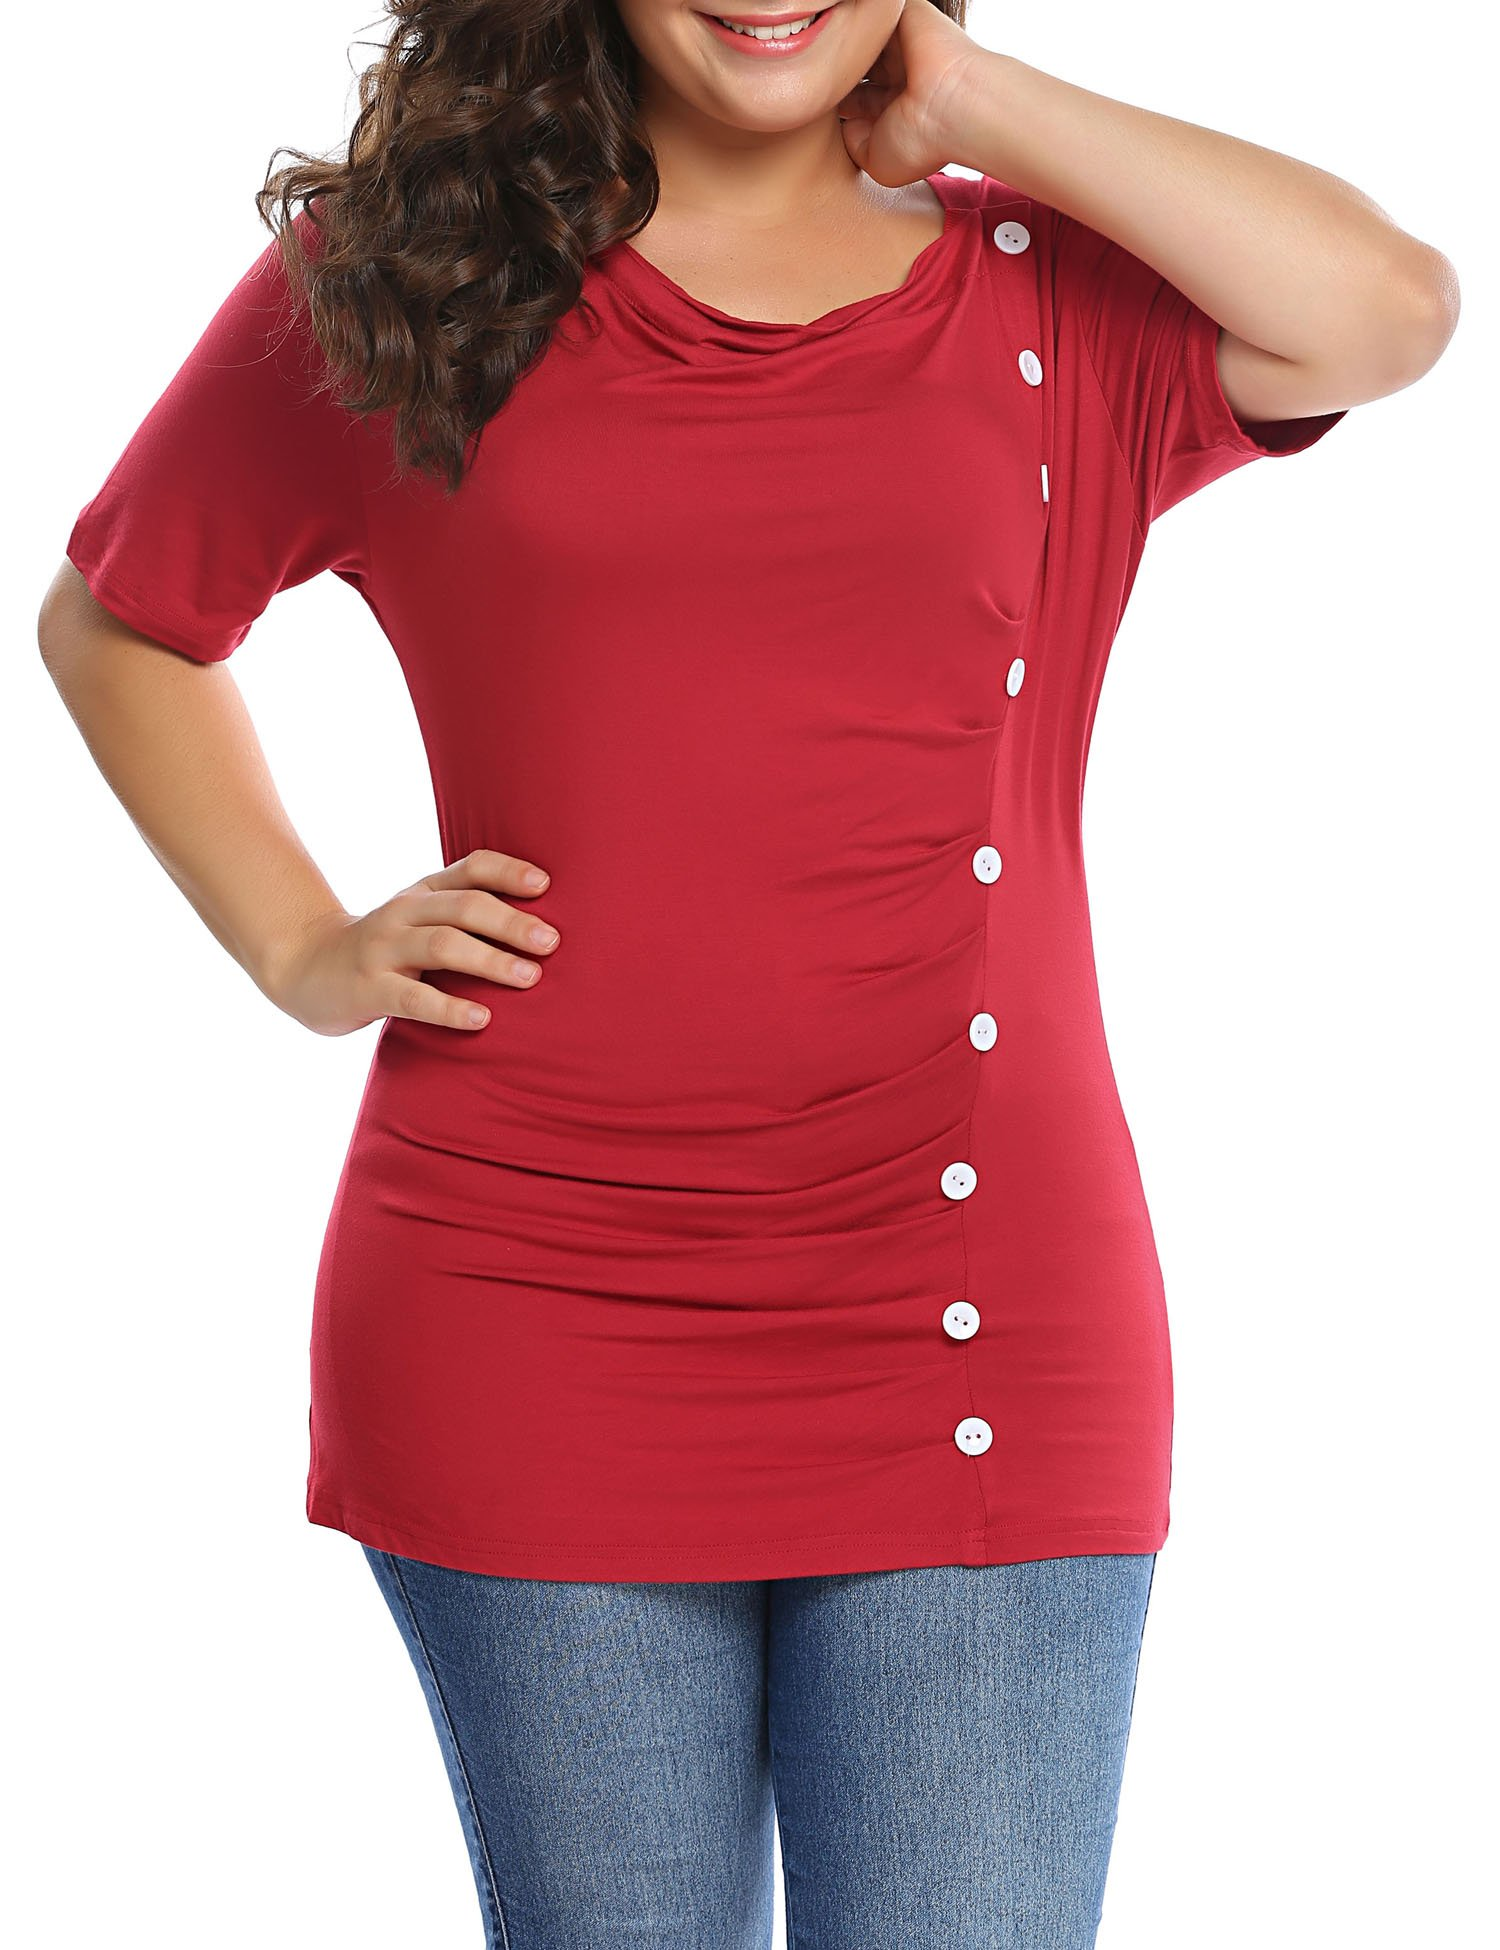 Involand Womens Plus Size Solid Short Sleeve T Shirt Draped Neck Button Front Top Blouse Tee,Wine Red,24 Plus